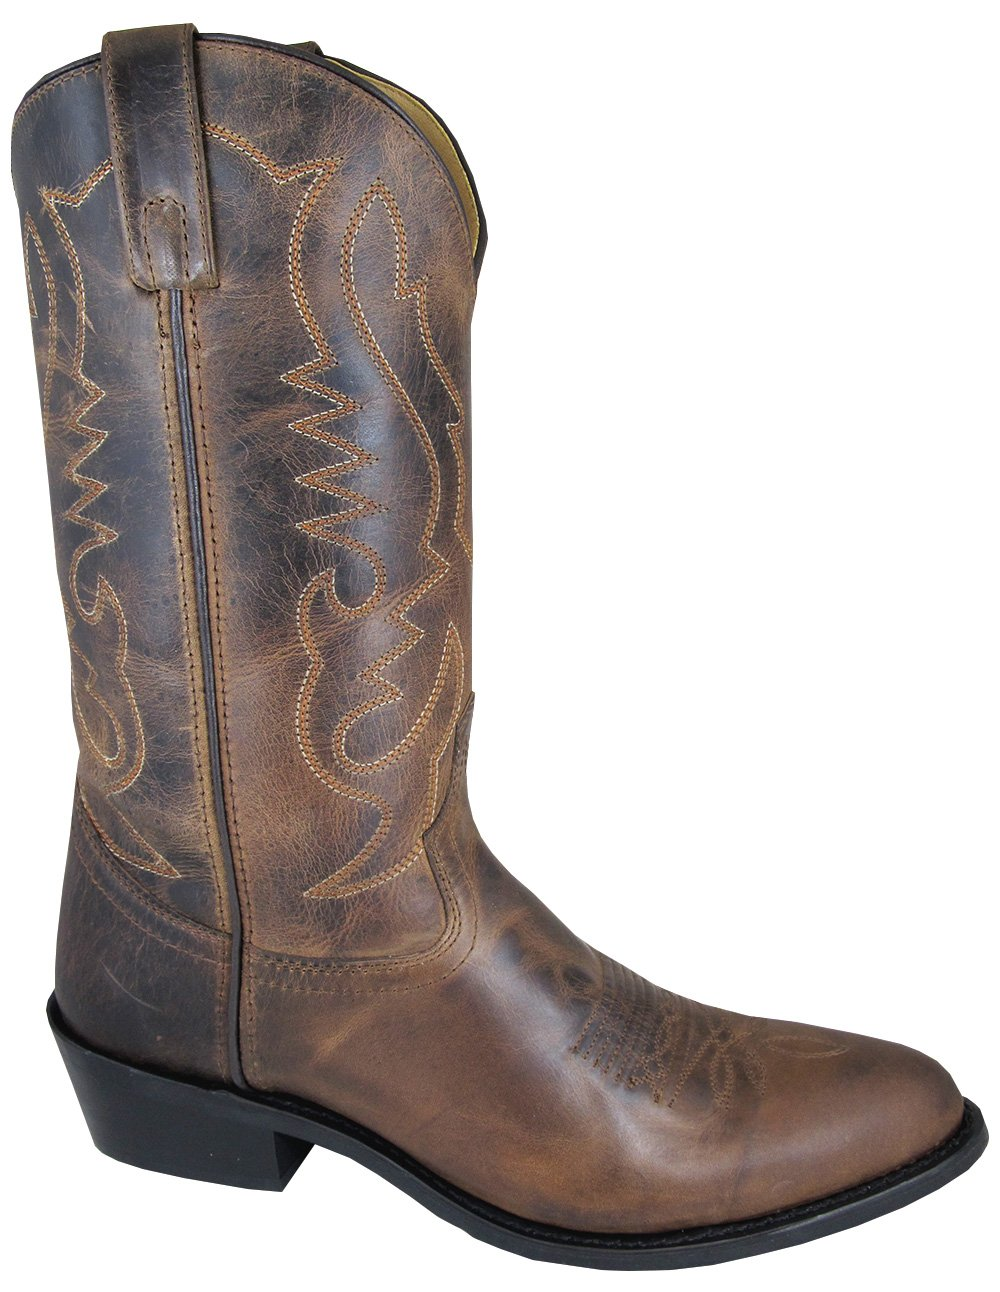 Smoky Mountain Mens Denver Round Toe Boots 9.5EE